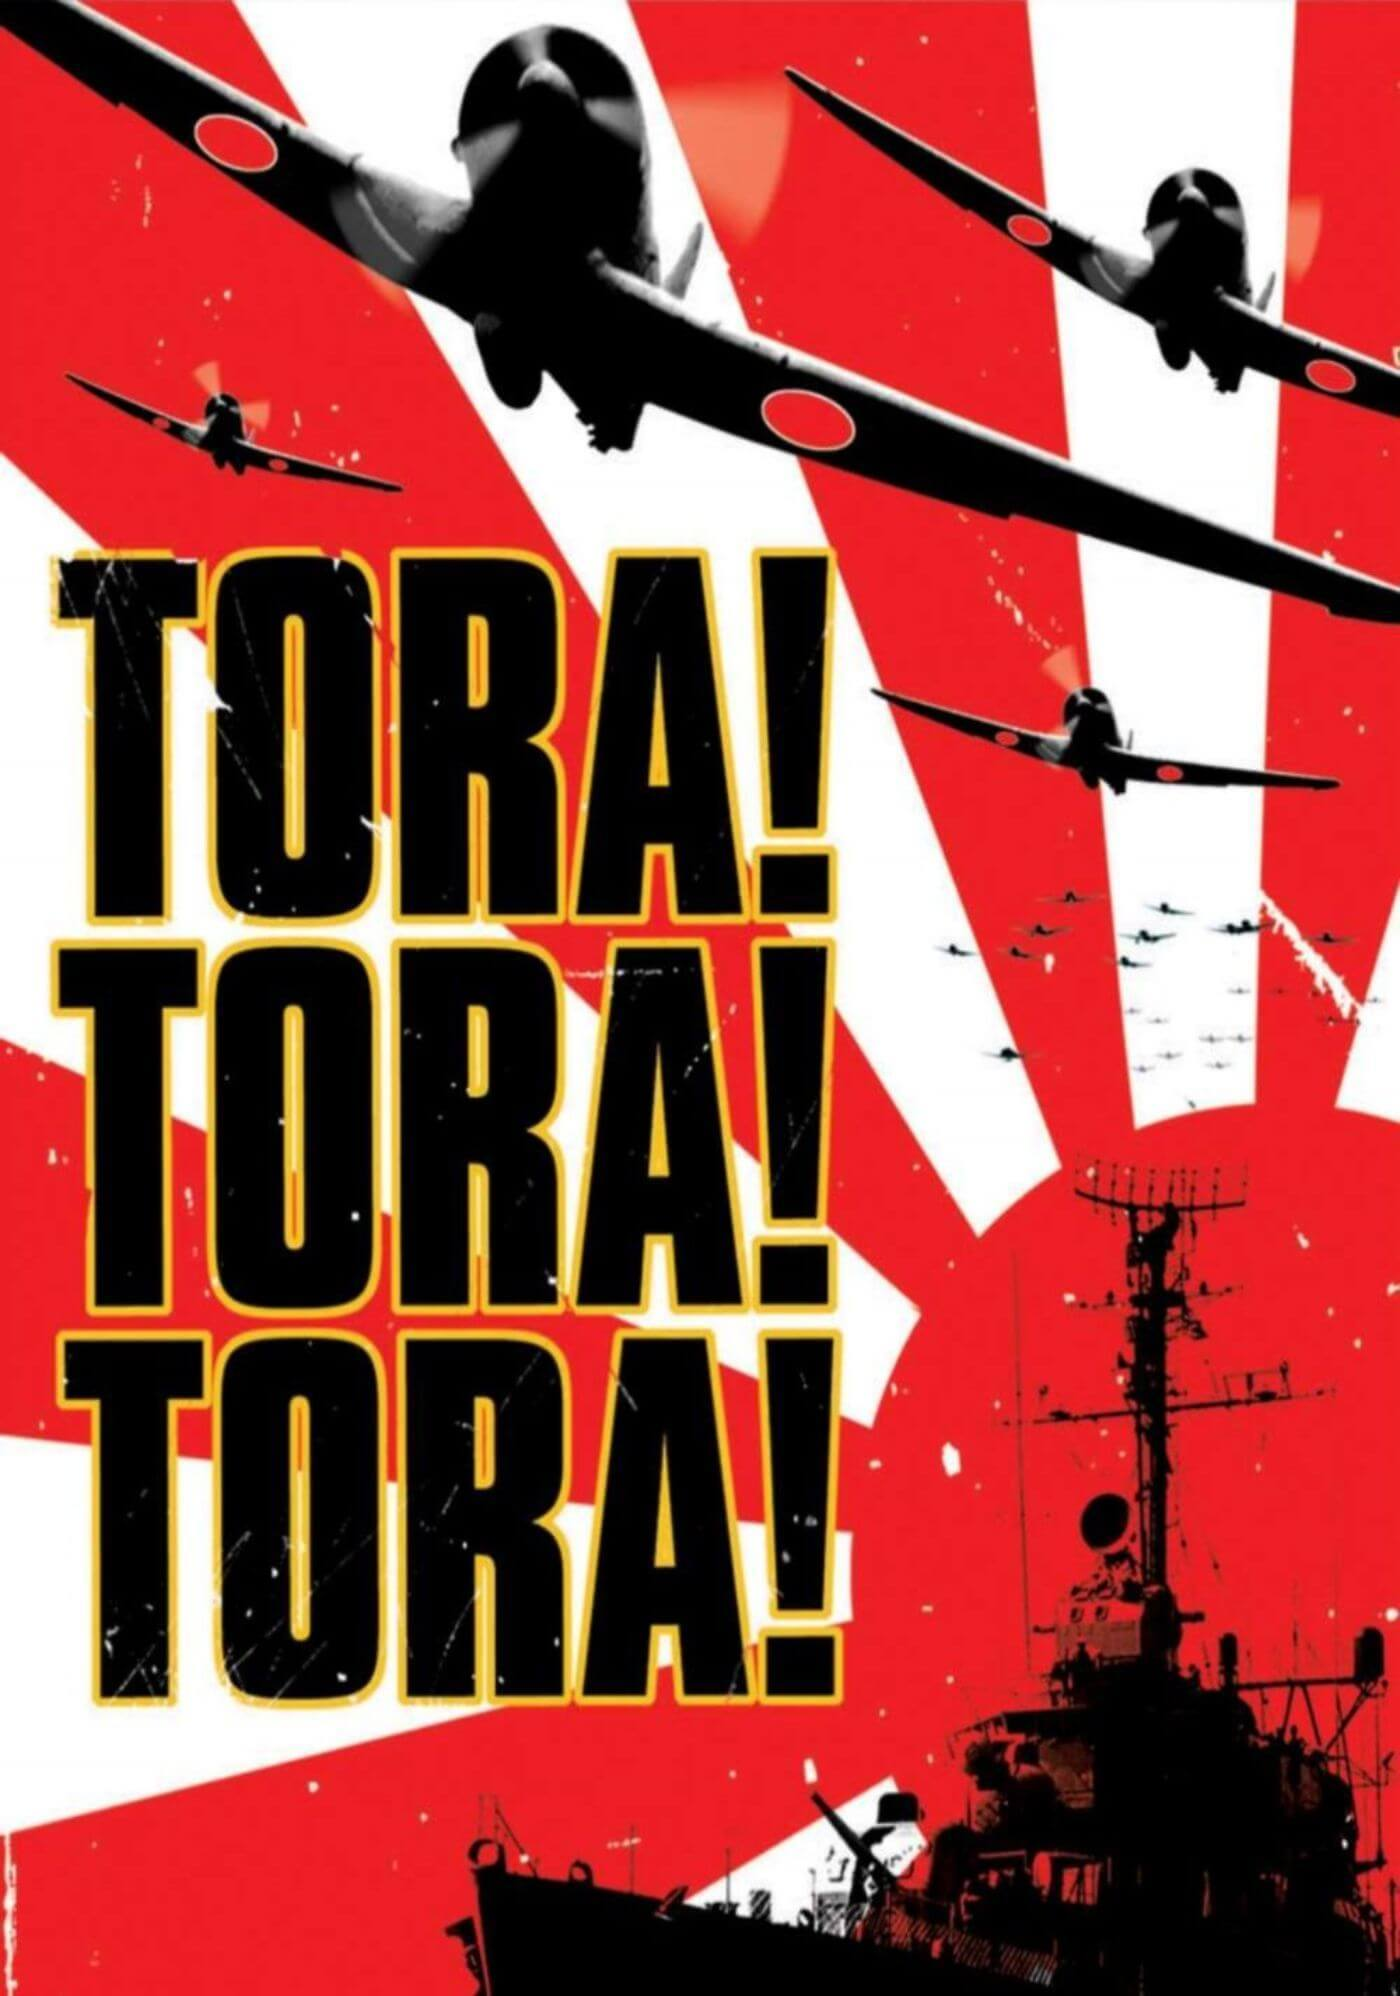 Tora Tora Tora - Hollywood Cult War Classics Graphic Movie Poster - Posters